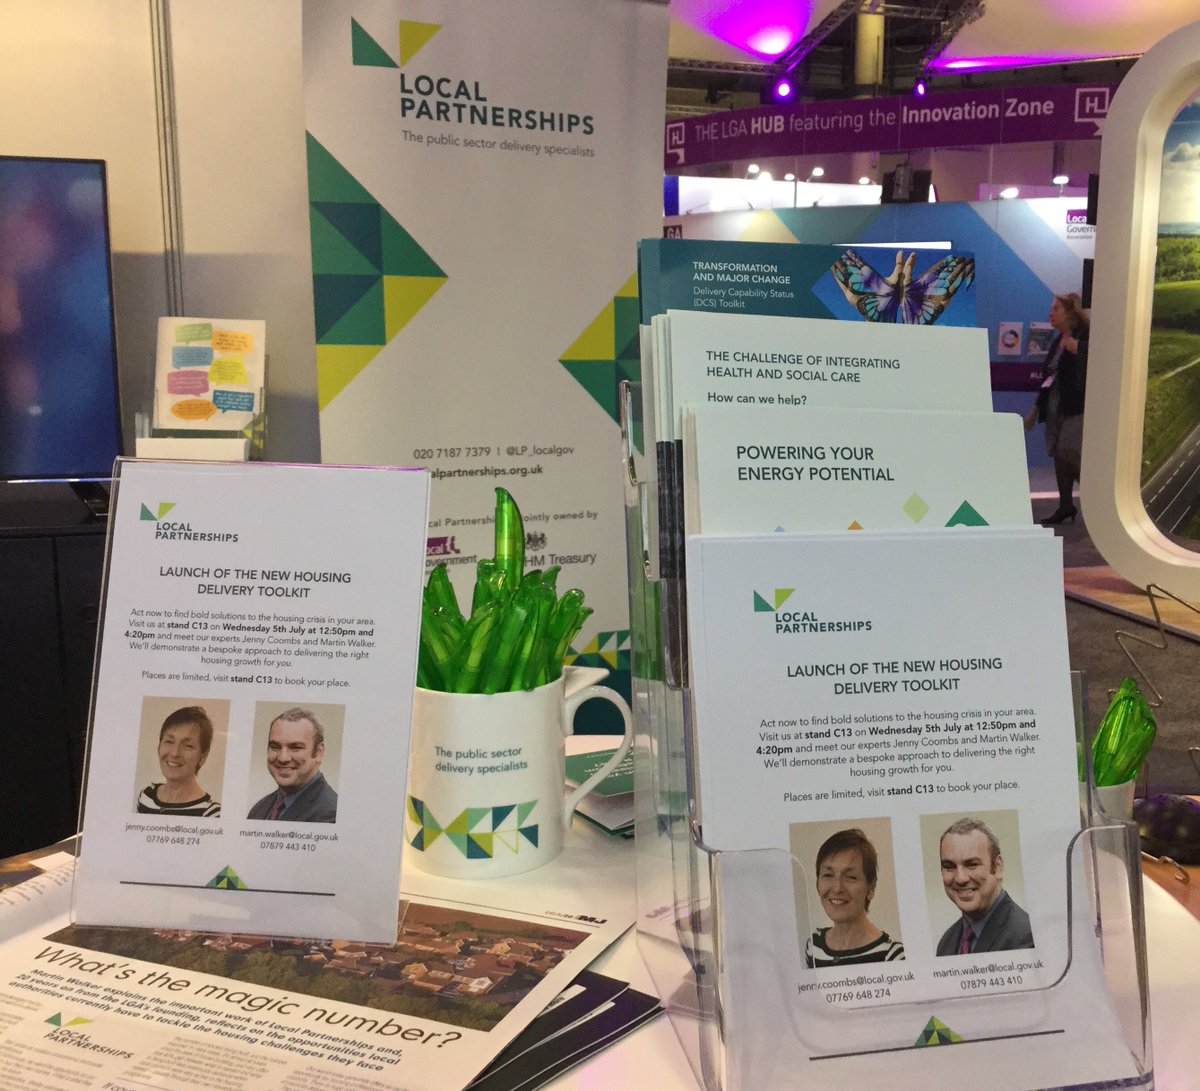 Join our housing experts at 12:50 for the launch of our new #housing toolkit - stand C13